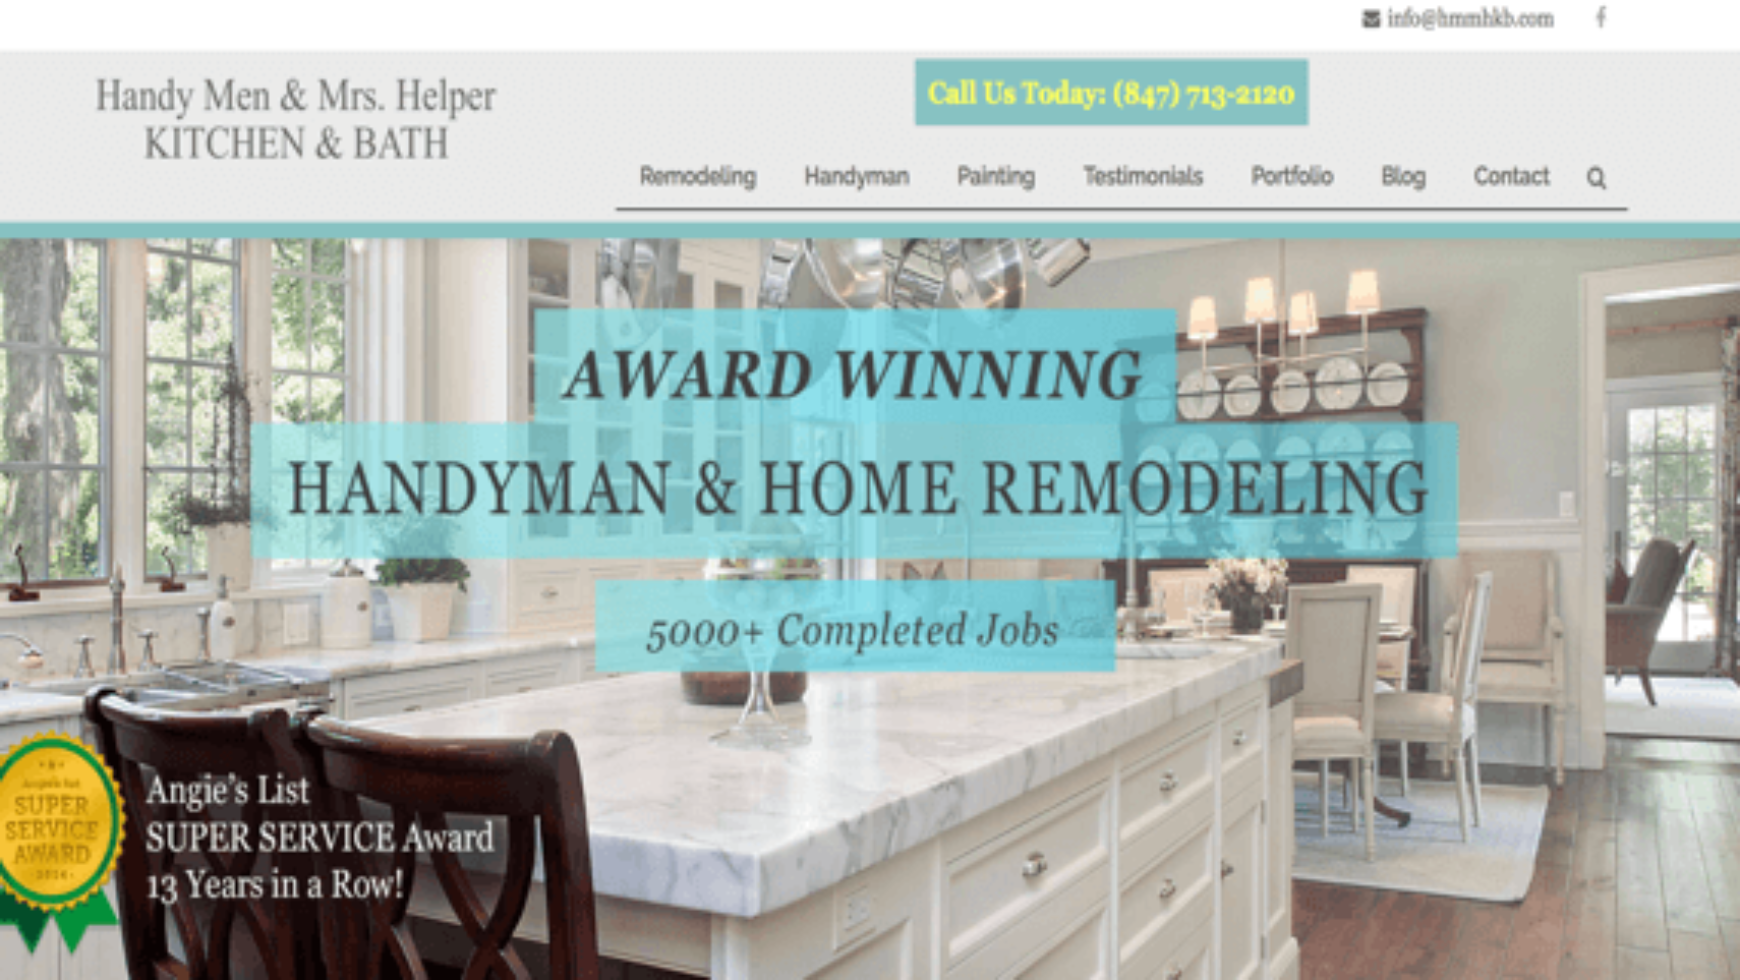 Handy Men U0026 Mrs. Helper Kitchen U0026 Bath Website U2013 Chicago Suburbs